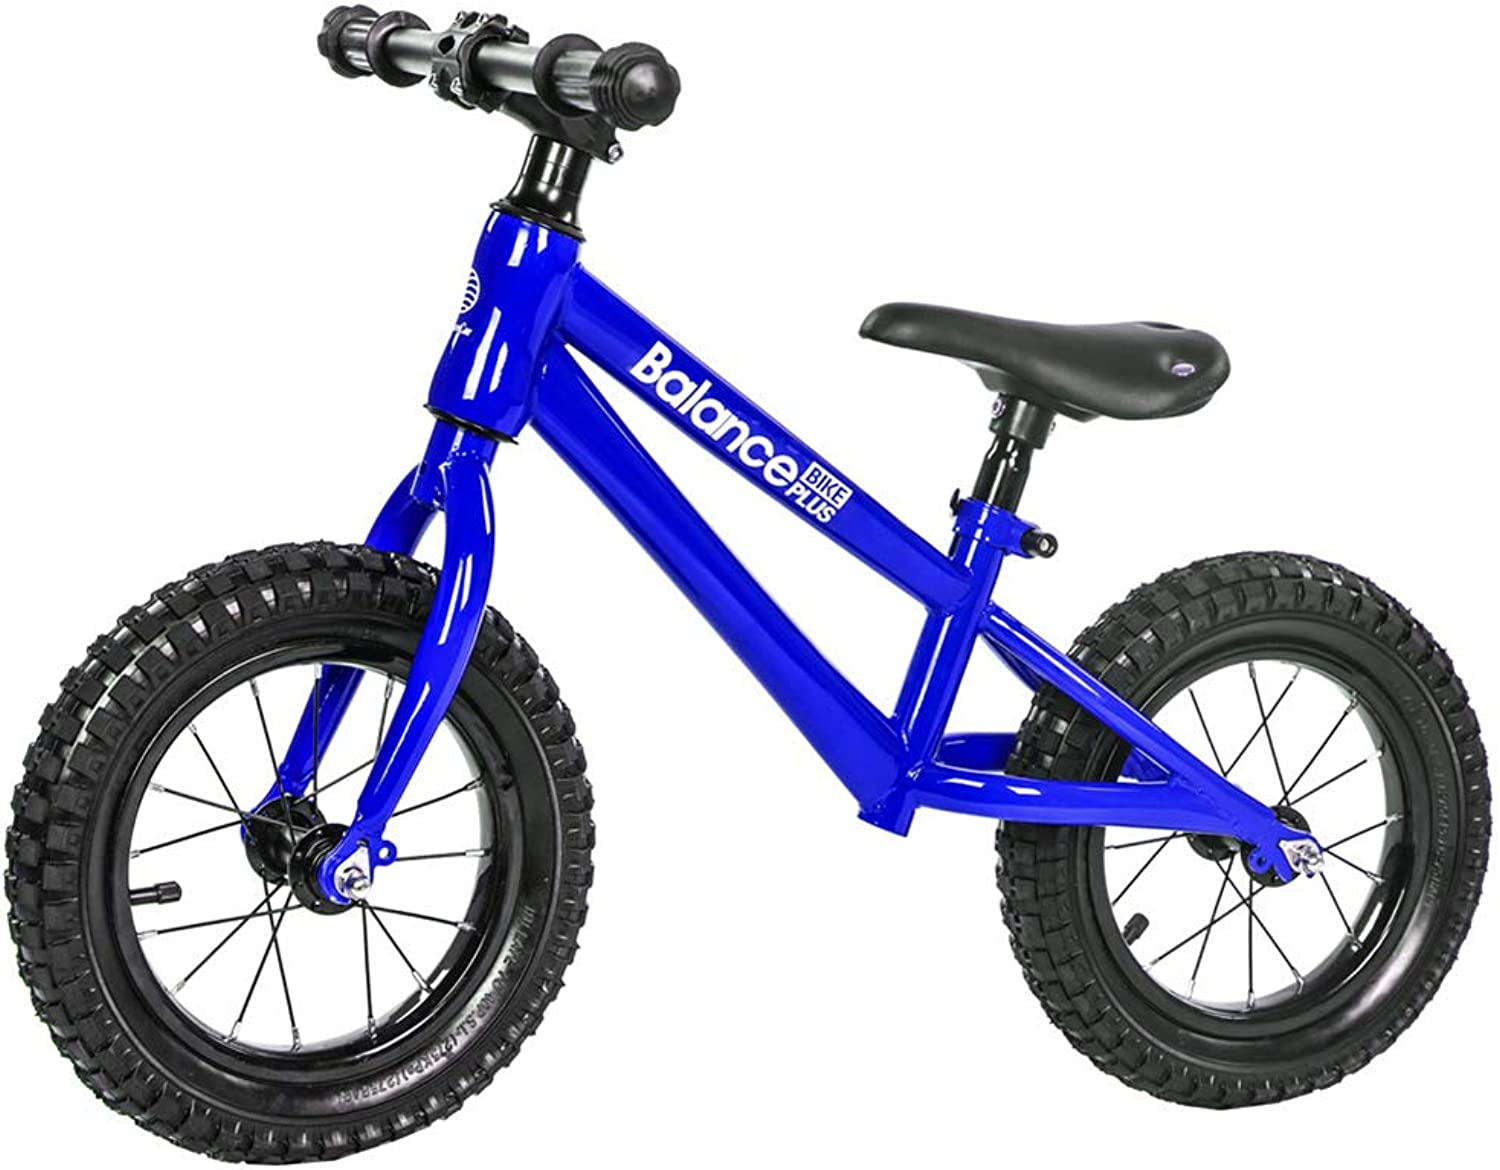 Sport Balance Bike, No Pedal Control Walking Bicycle Transitional Cycling Rubber Tires Adjustable Seat Upholstered Handlebars Kids Toddlers for 26 Years Old